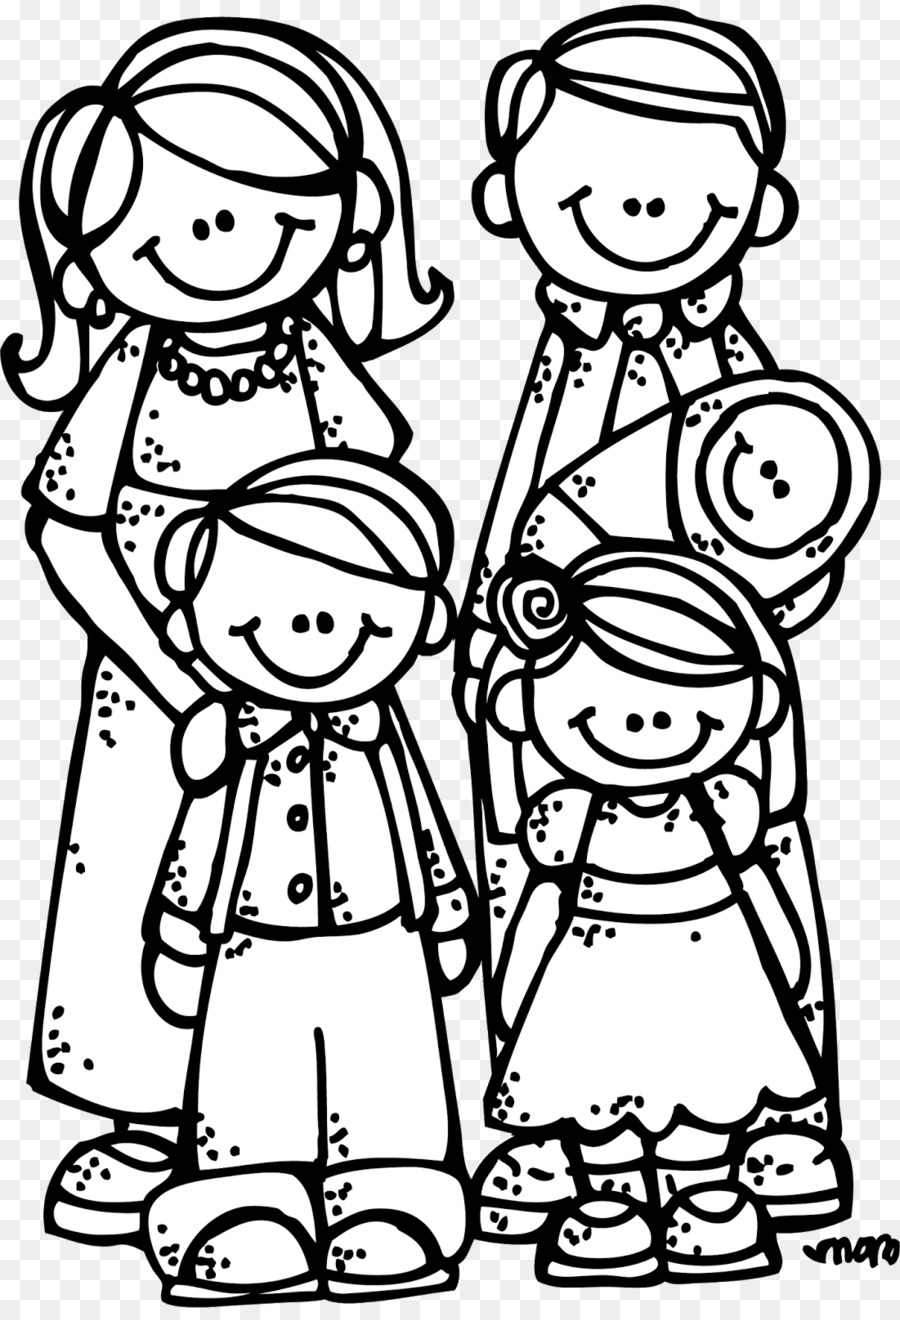 family praying clipart black and white - HD 1101×1600